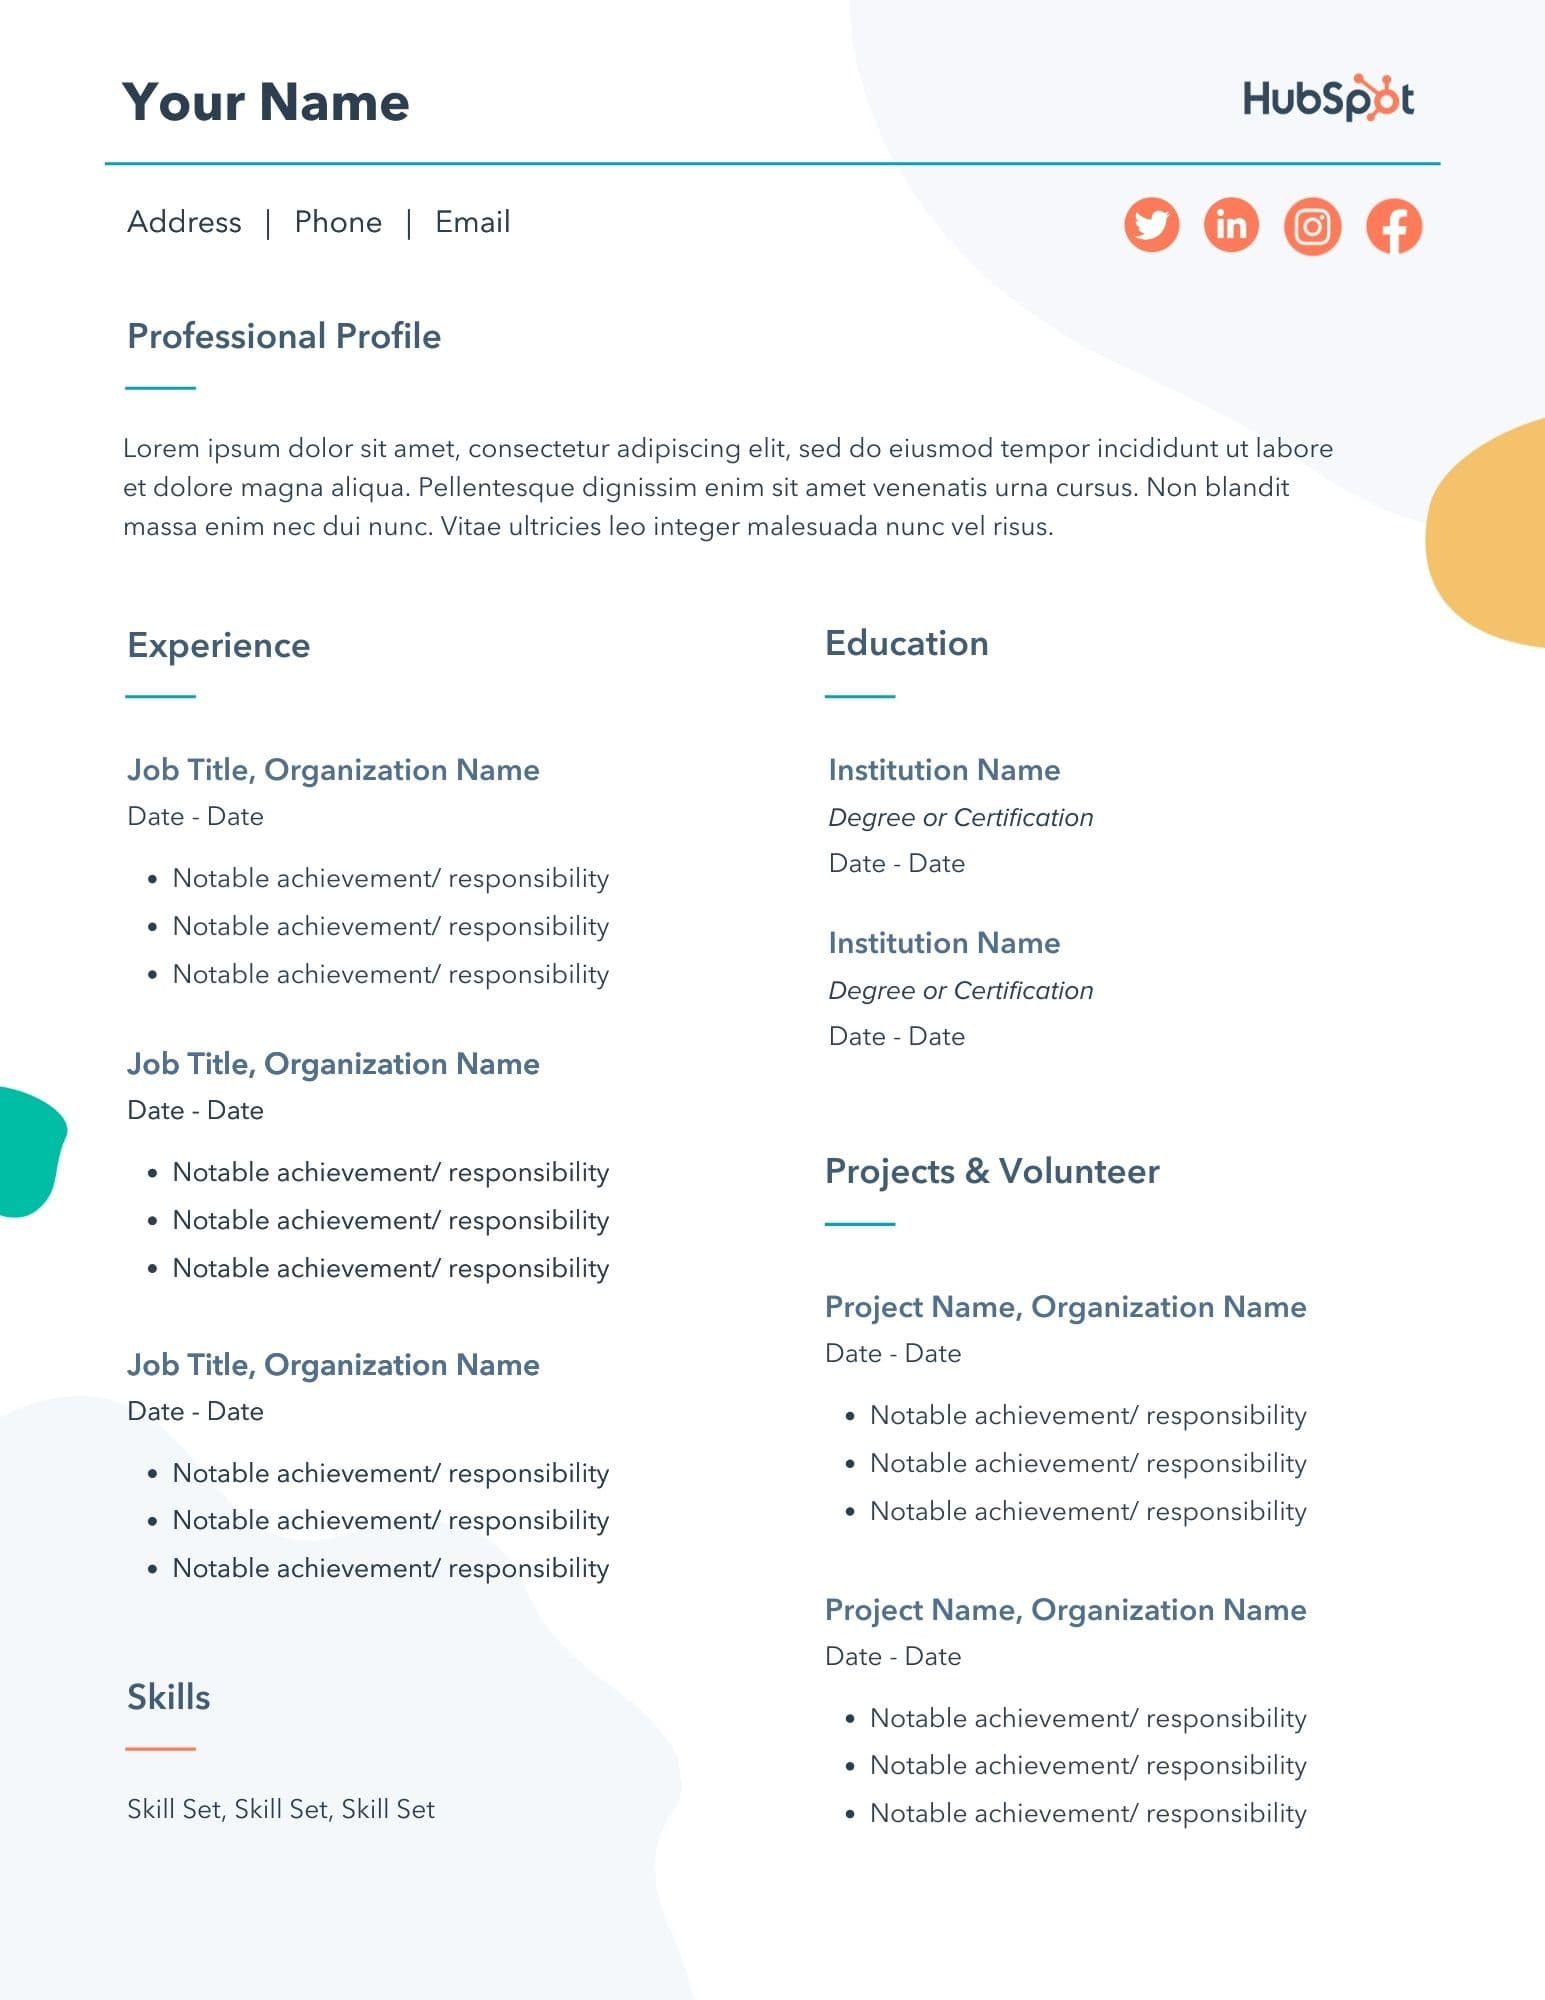 free resume templates for microsoft word to make your own build template business owner Resume Build Your Own Resume Free